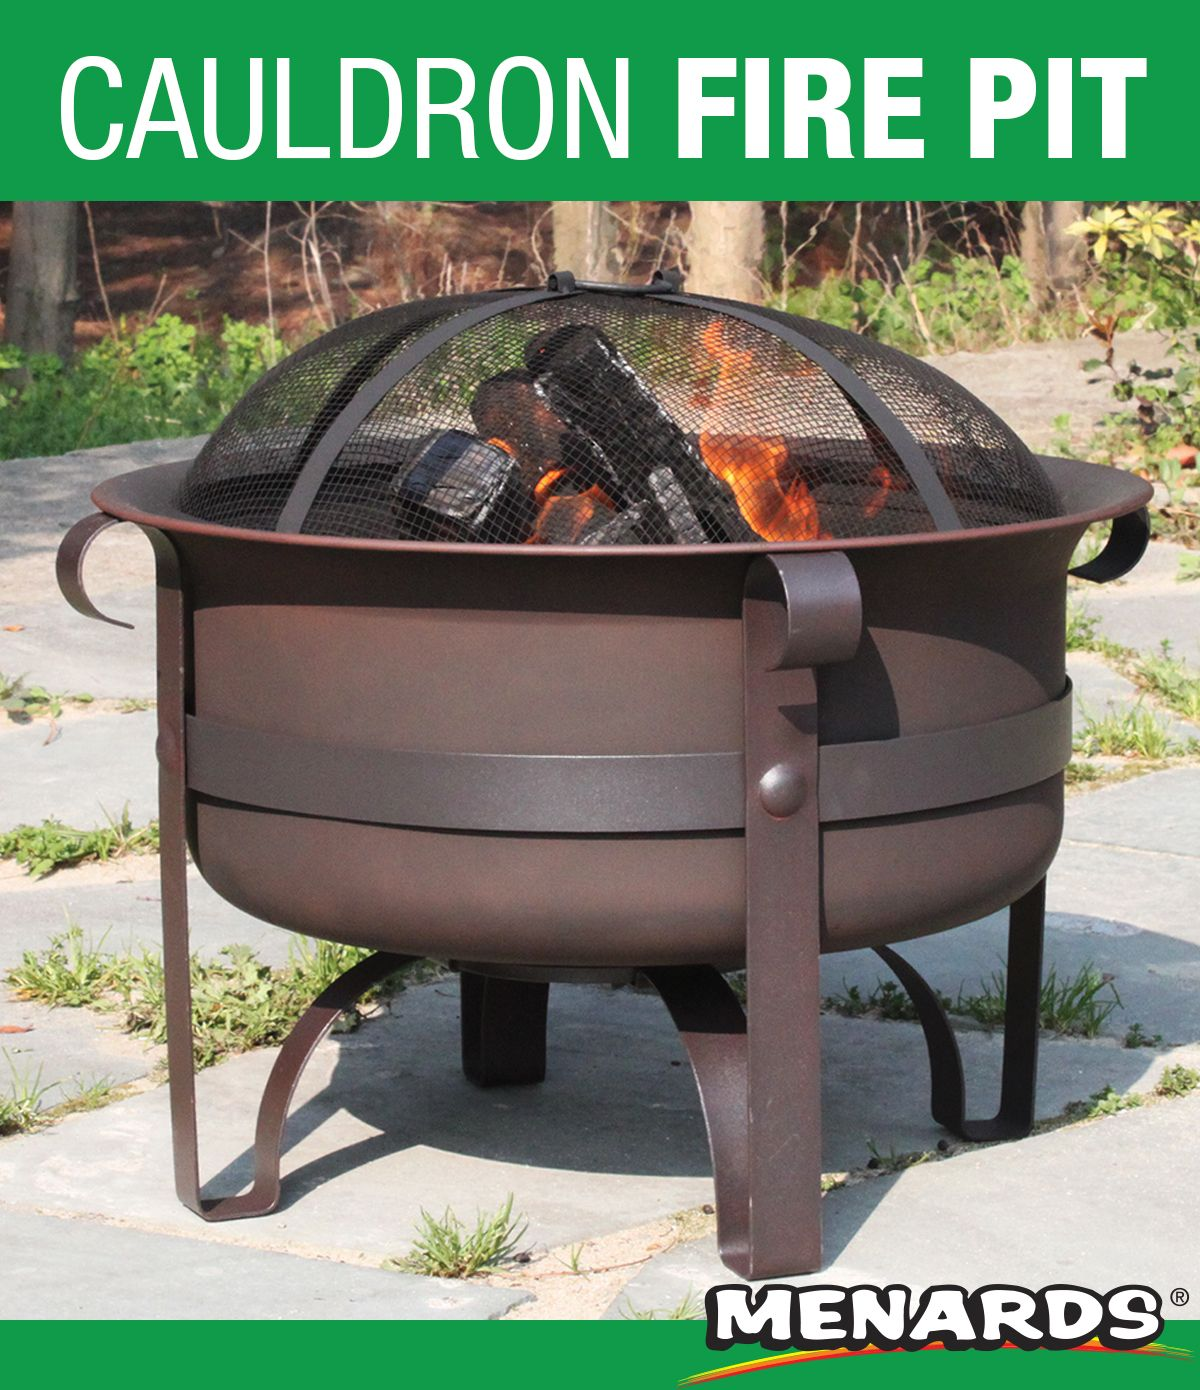 This Steel Cauldron Measures 24 In Diameter And Has A Deep Bowl Ideal For Large Fires It Features An Anti Outdoor Fire Pit Outdoor Heating Backyard Creations